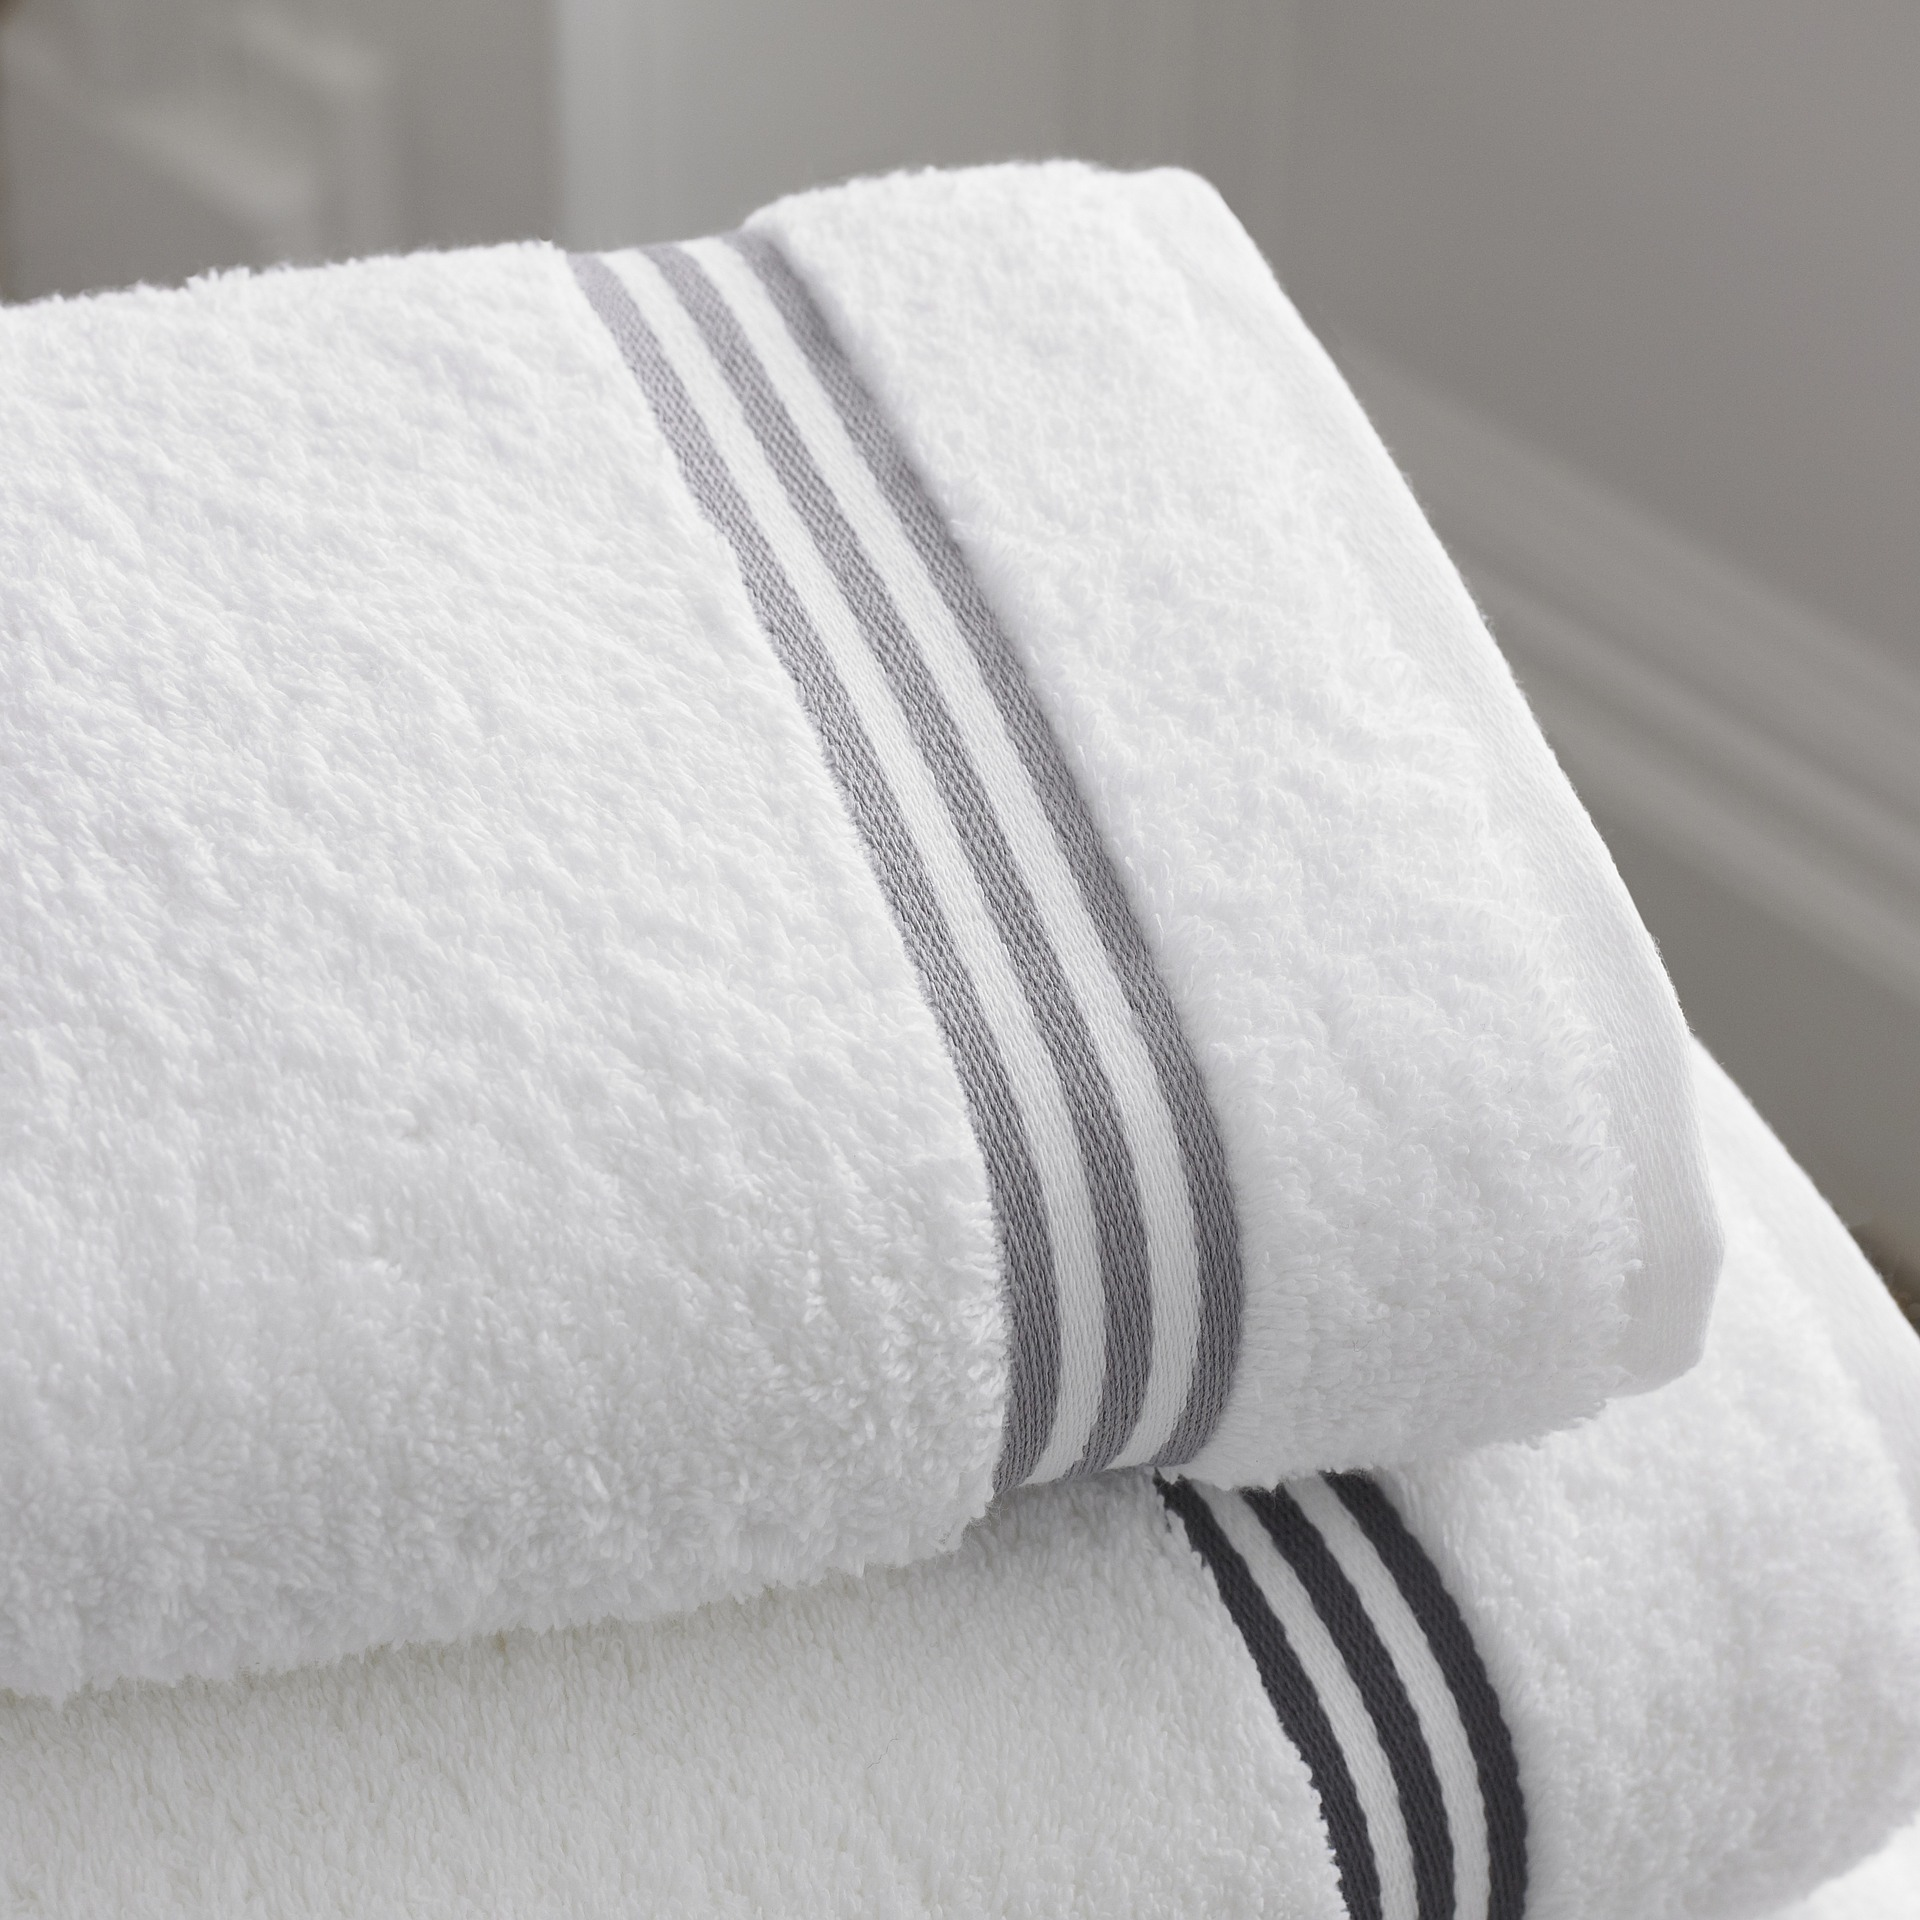 How to Choose the Right Towels for Your Bathroom